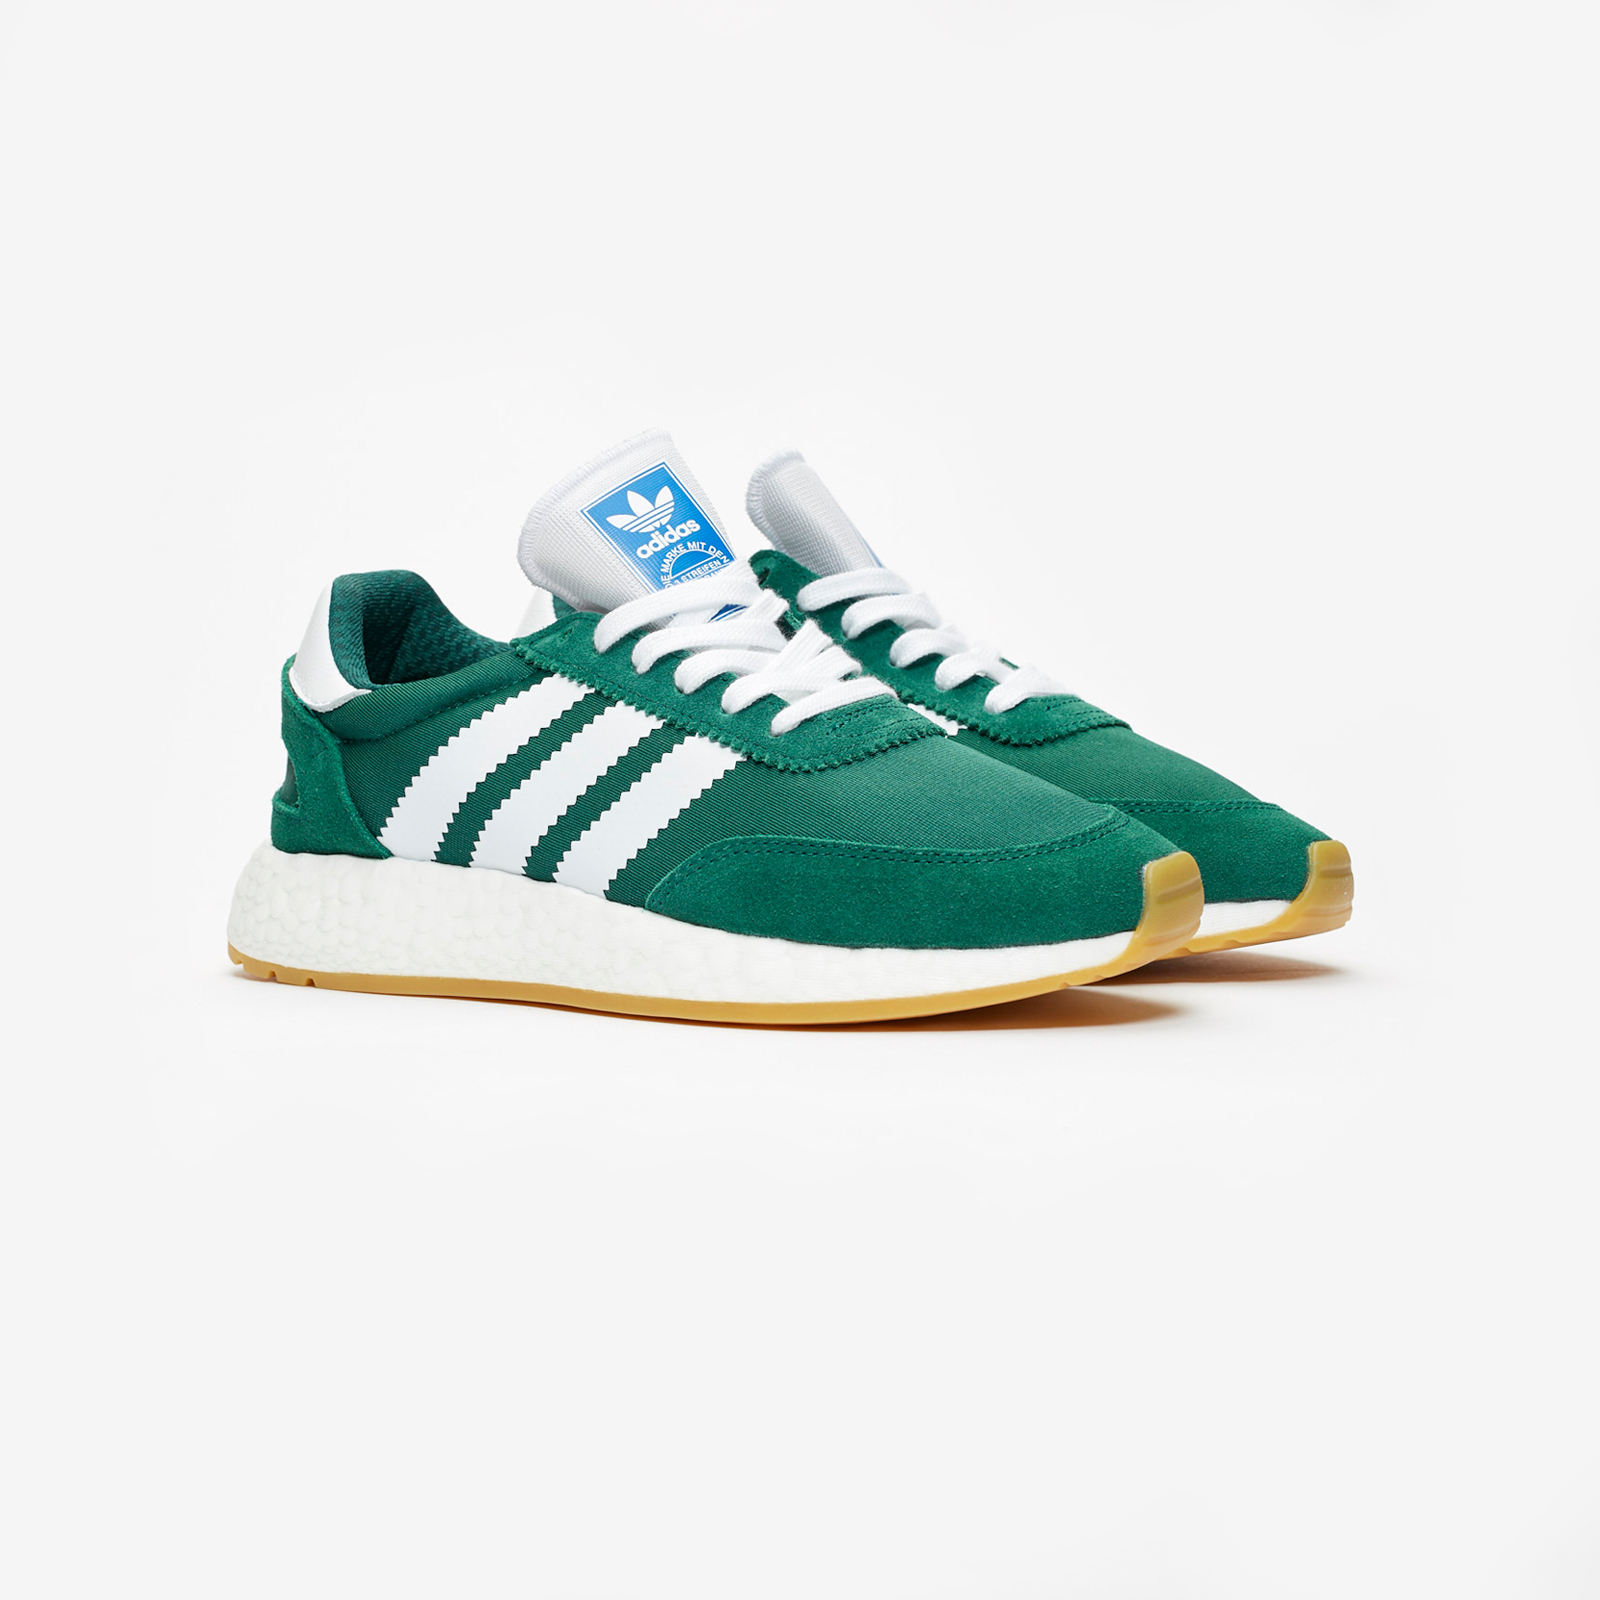 authentic best loved authentic quality adidas I-5923 W - Cg6022 - Sneakersnstuff | sneakers ...